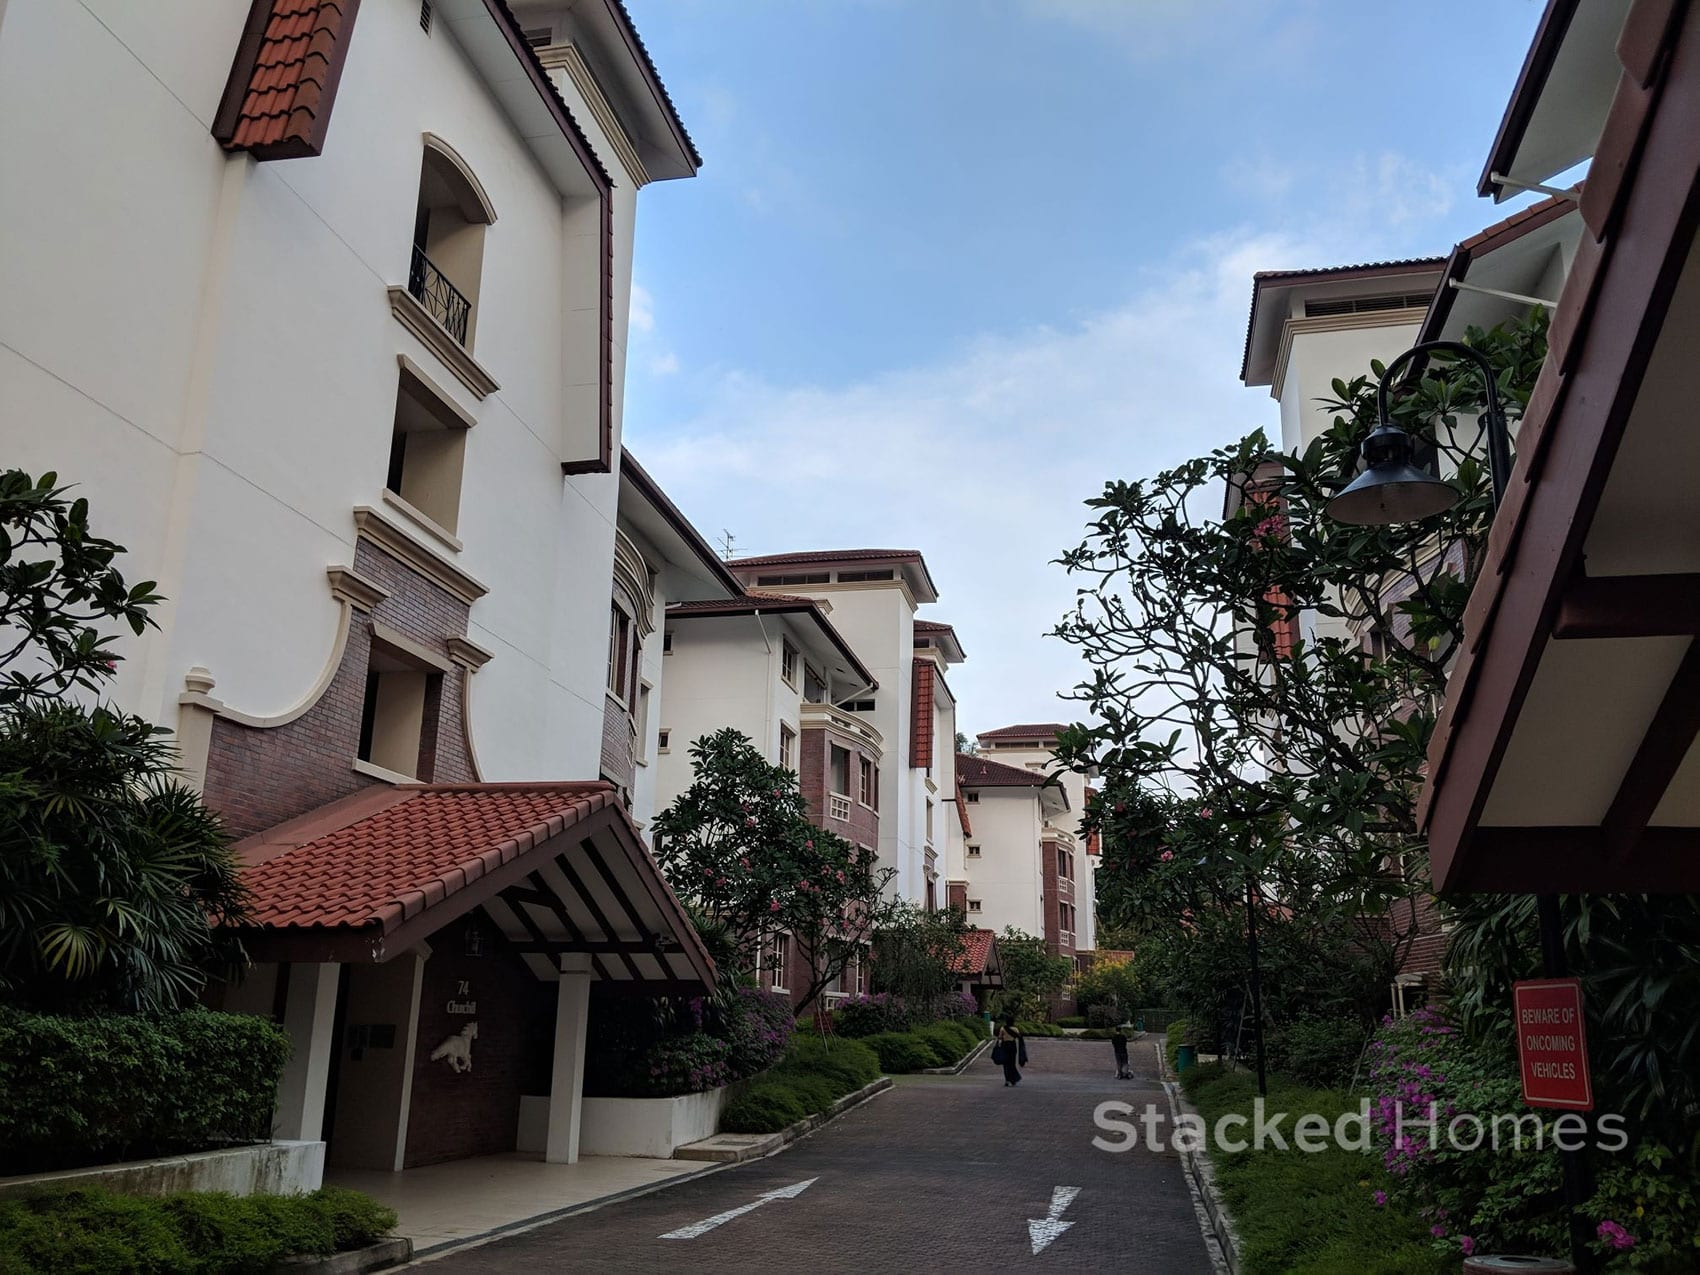 Gallop Gables condo review